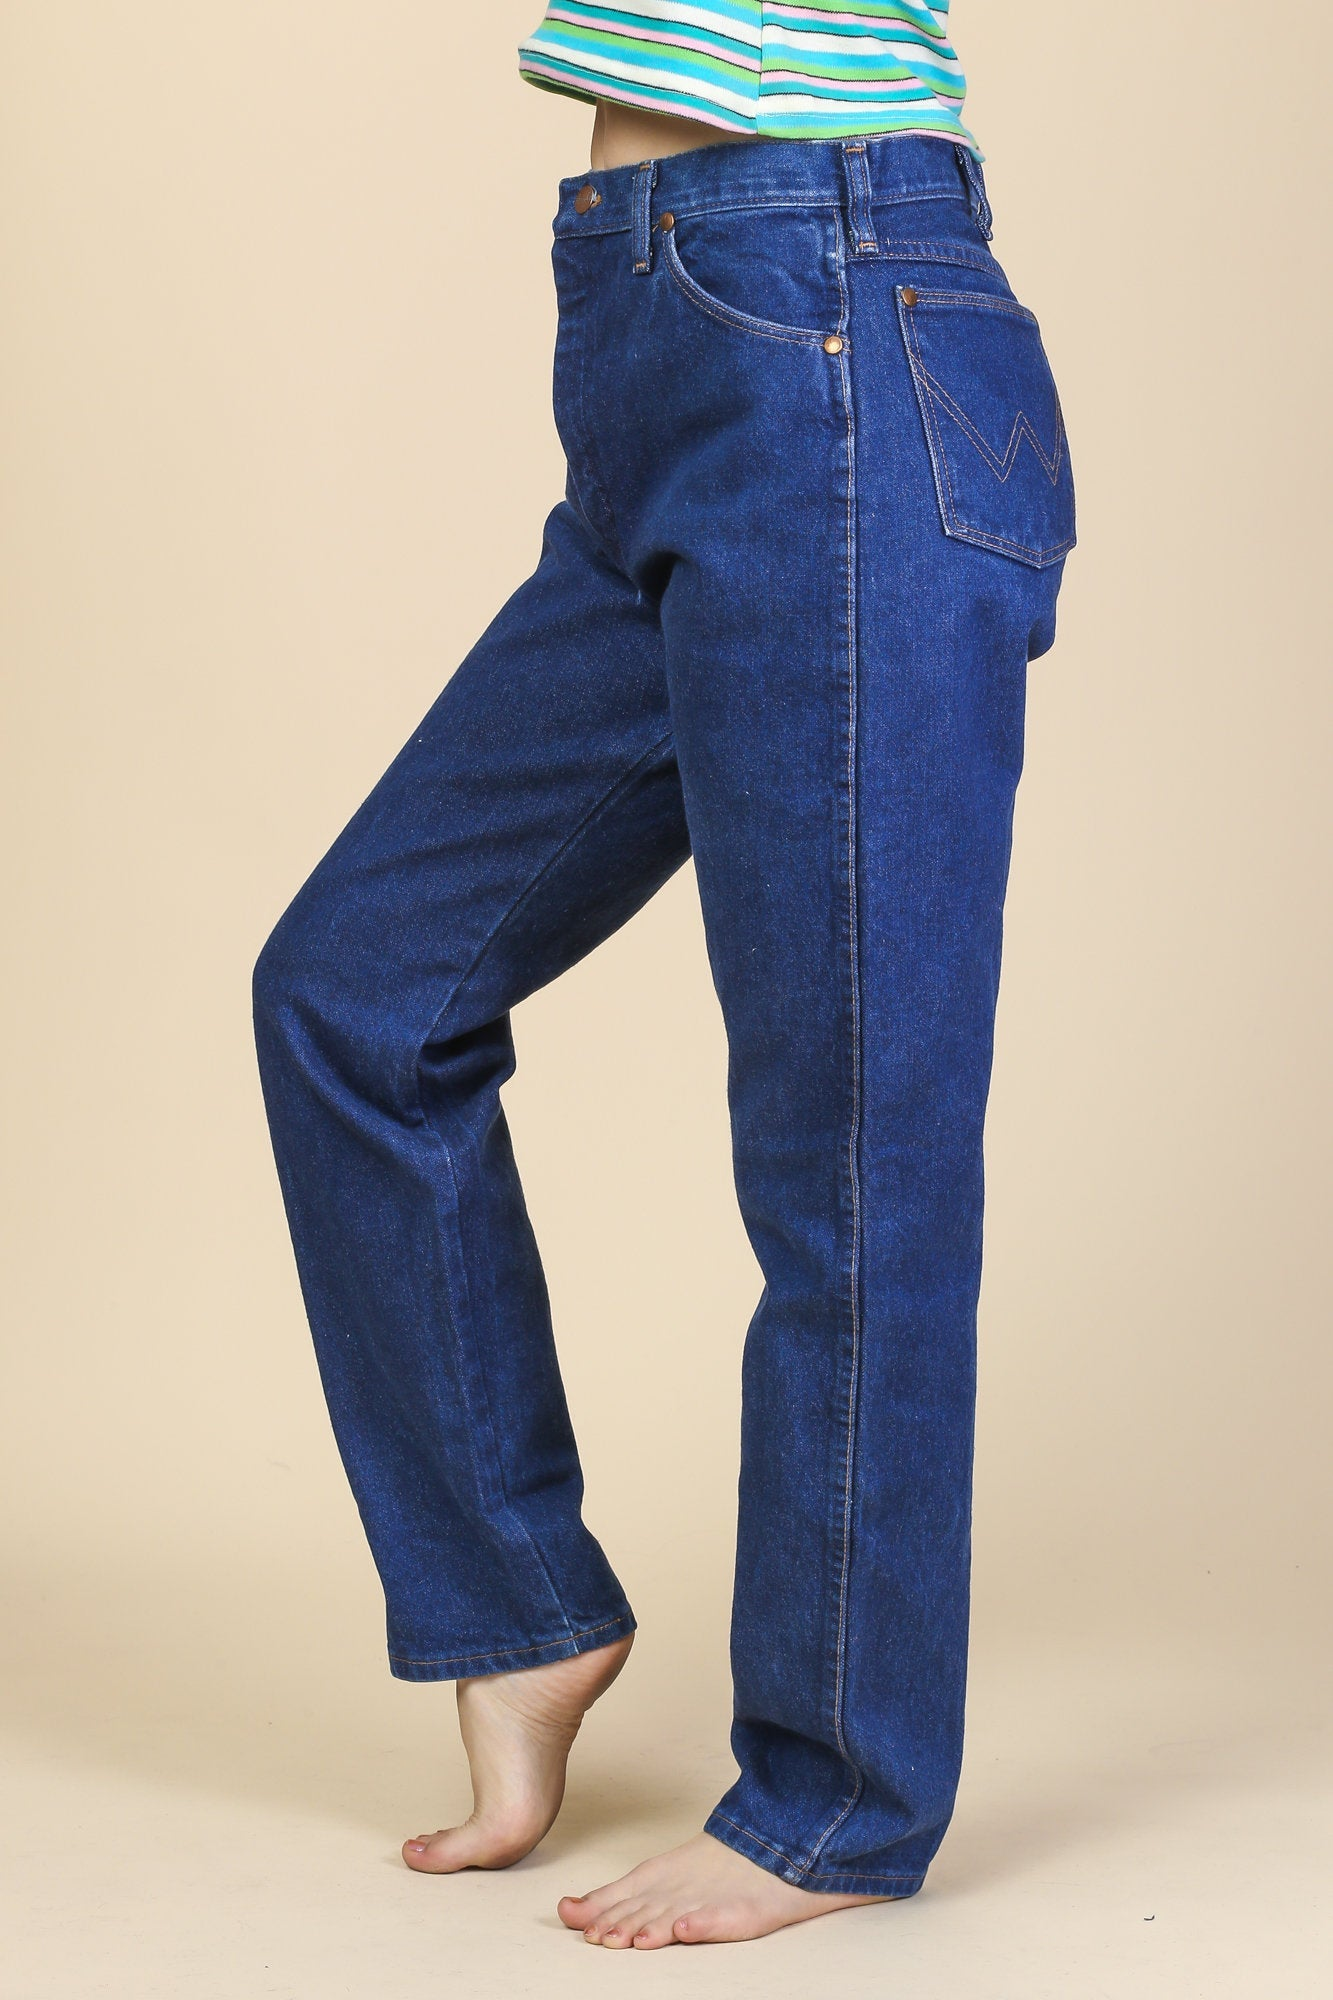 21ae12eea8ad2 80s Wrangler Jeans - Medium to Large